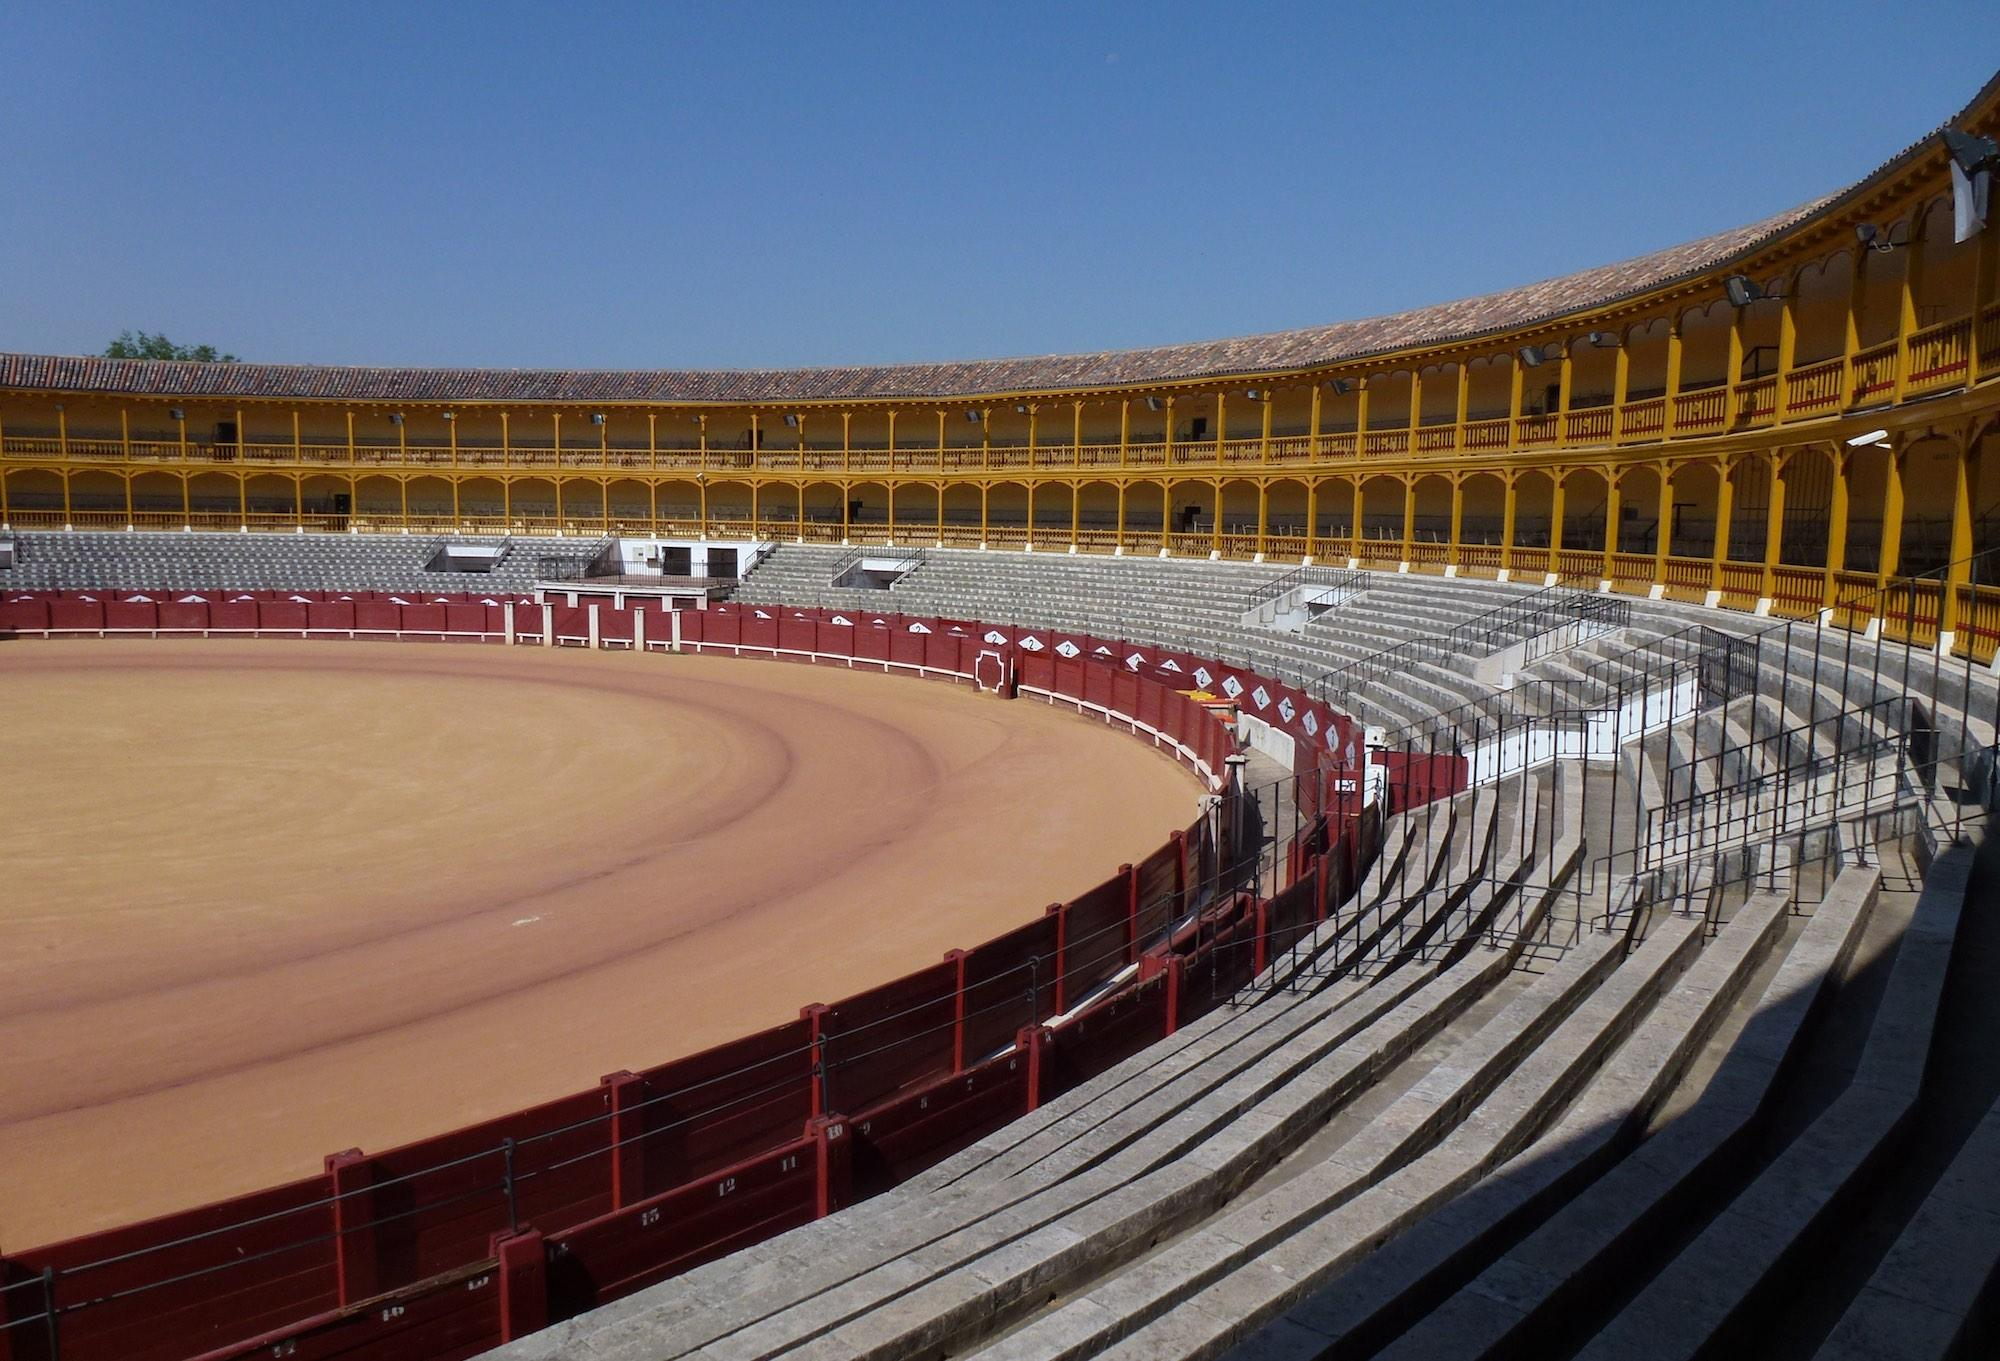 The Plaza de Toros hosts bullfights about twice per year, but it also hosts performances and other events, as well as the Museo Taurino bullfighting museum featuring garments, utensils and posters of famous matadors. – © Joaquín Álvarez